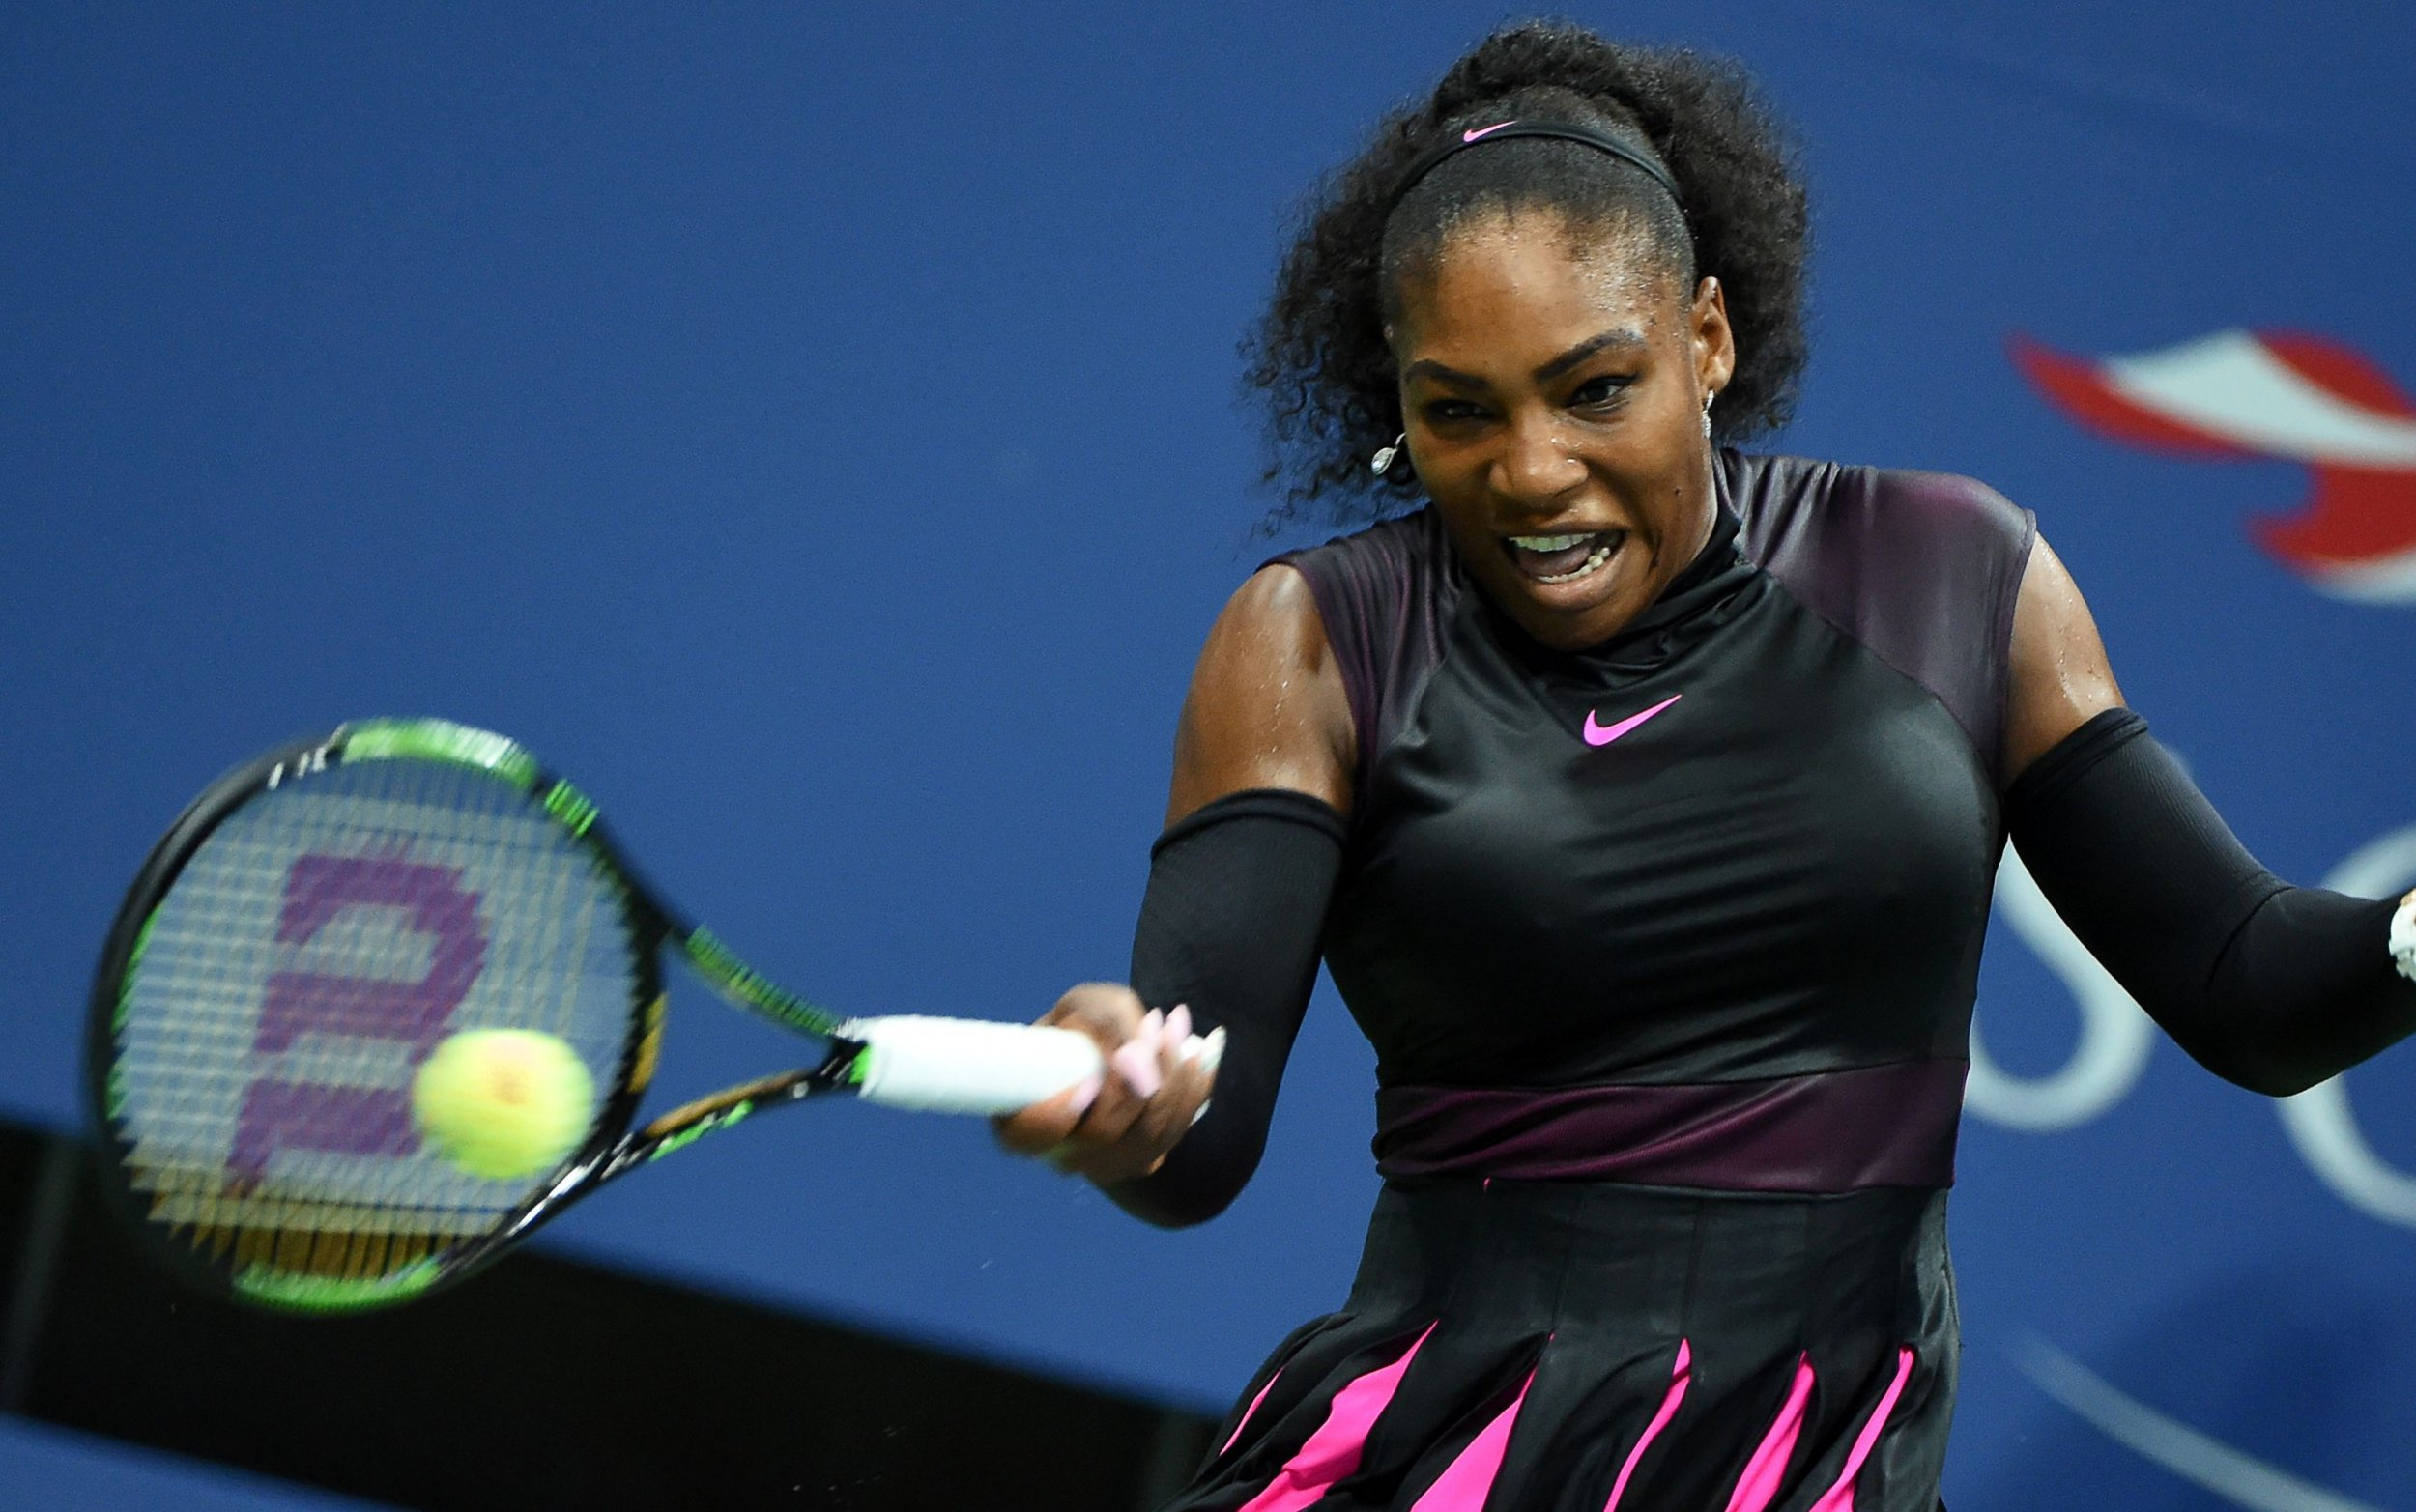 Professional tennis player Serena Williams